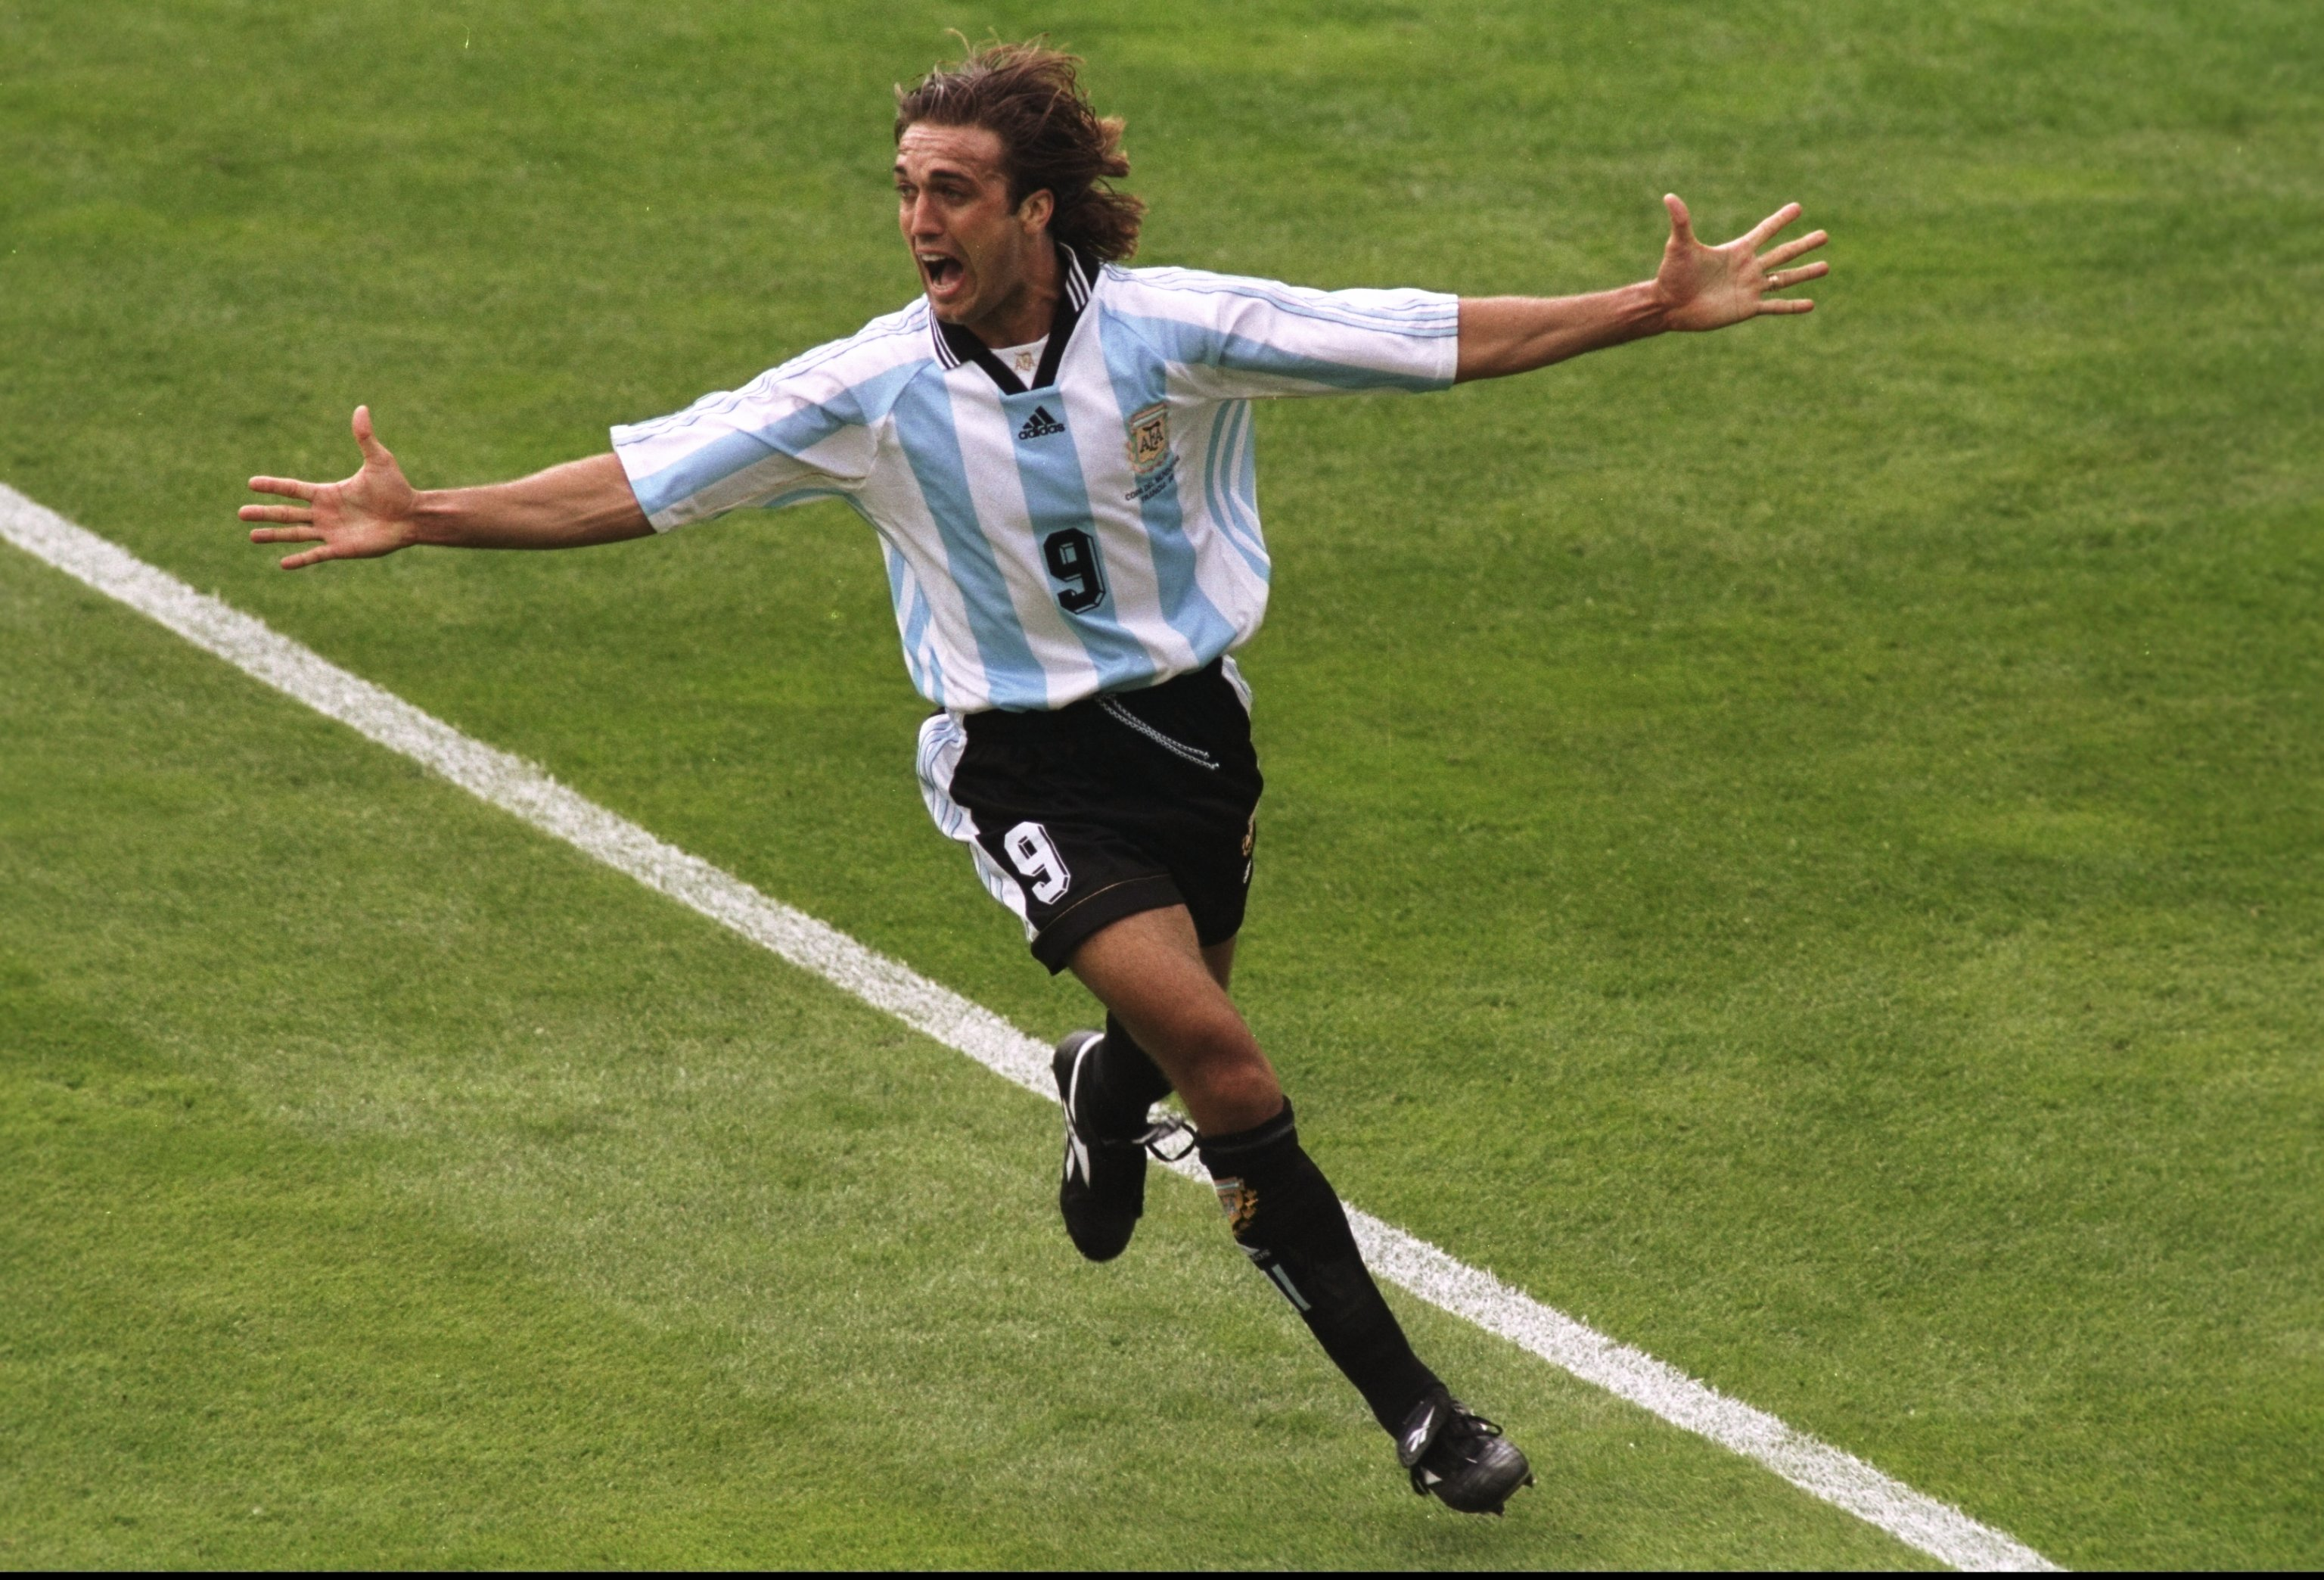 14 Jun 1998: Gabriel Batistuta of Argentina celebrates after scoring in the World Cup group H game against Japan at the Stade Municipal in Toulouse, France. Argentina won 1-0. Mandatory Credit: Laurence Griffiths /Allsport